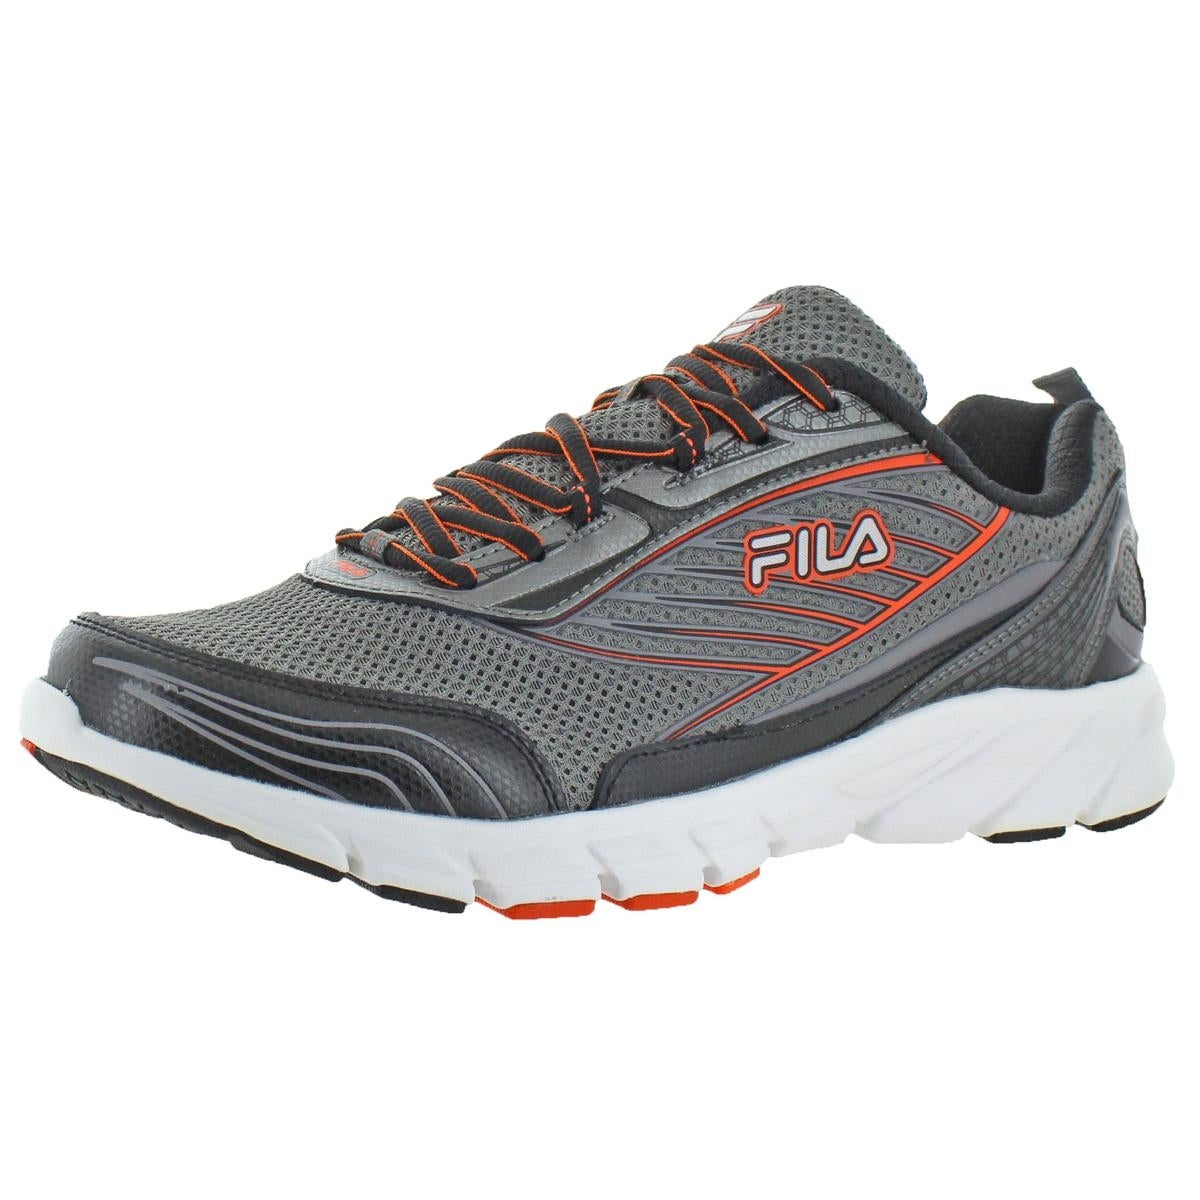 c9d202bab Shop Fila Mens Forward 2 Running Shoes Athletic Lifestyle - Free Shipping  On Orders Over  45 - Overstock - 25580454